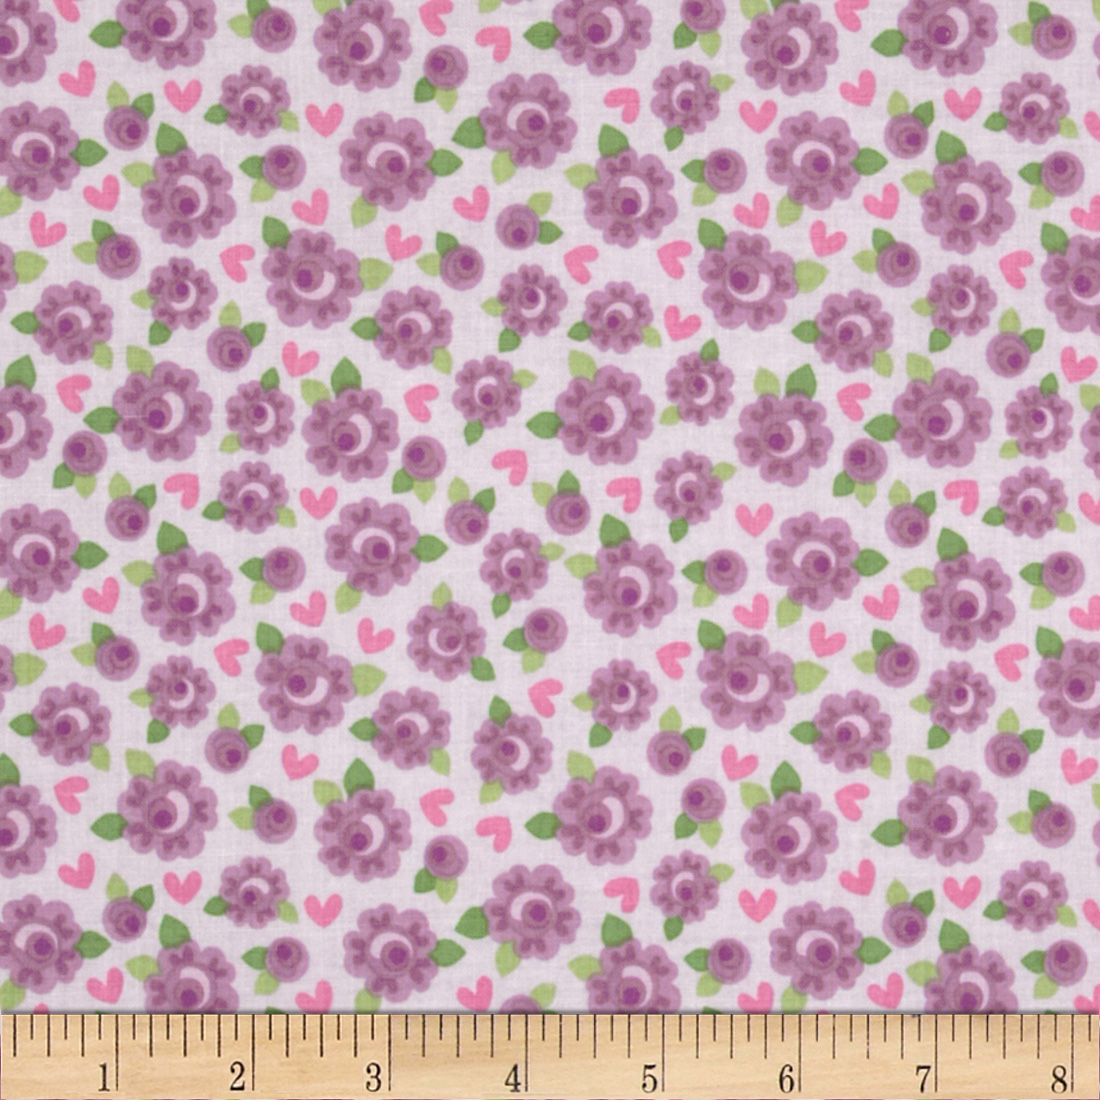 Riley Blake Lovey Dovey Roses Purple Fabric